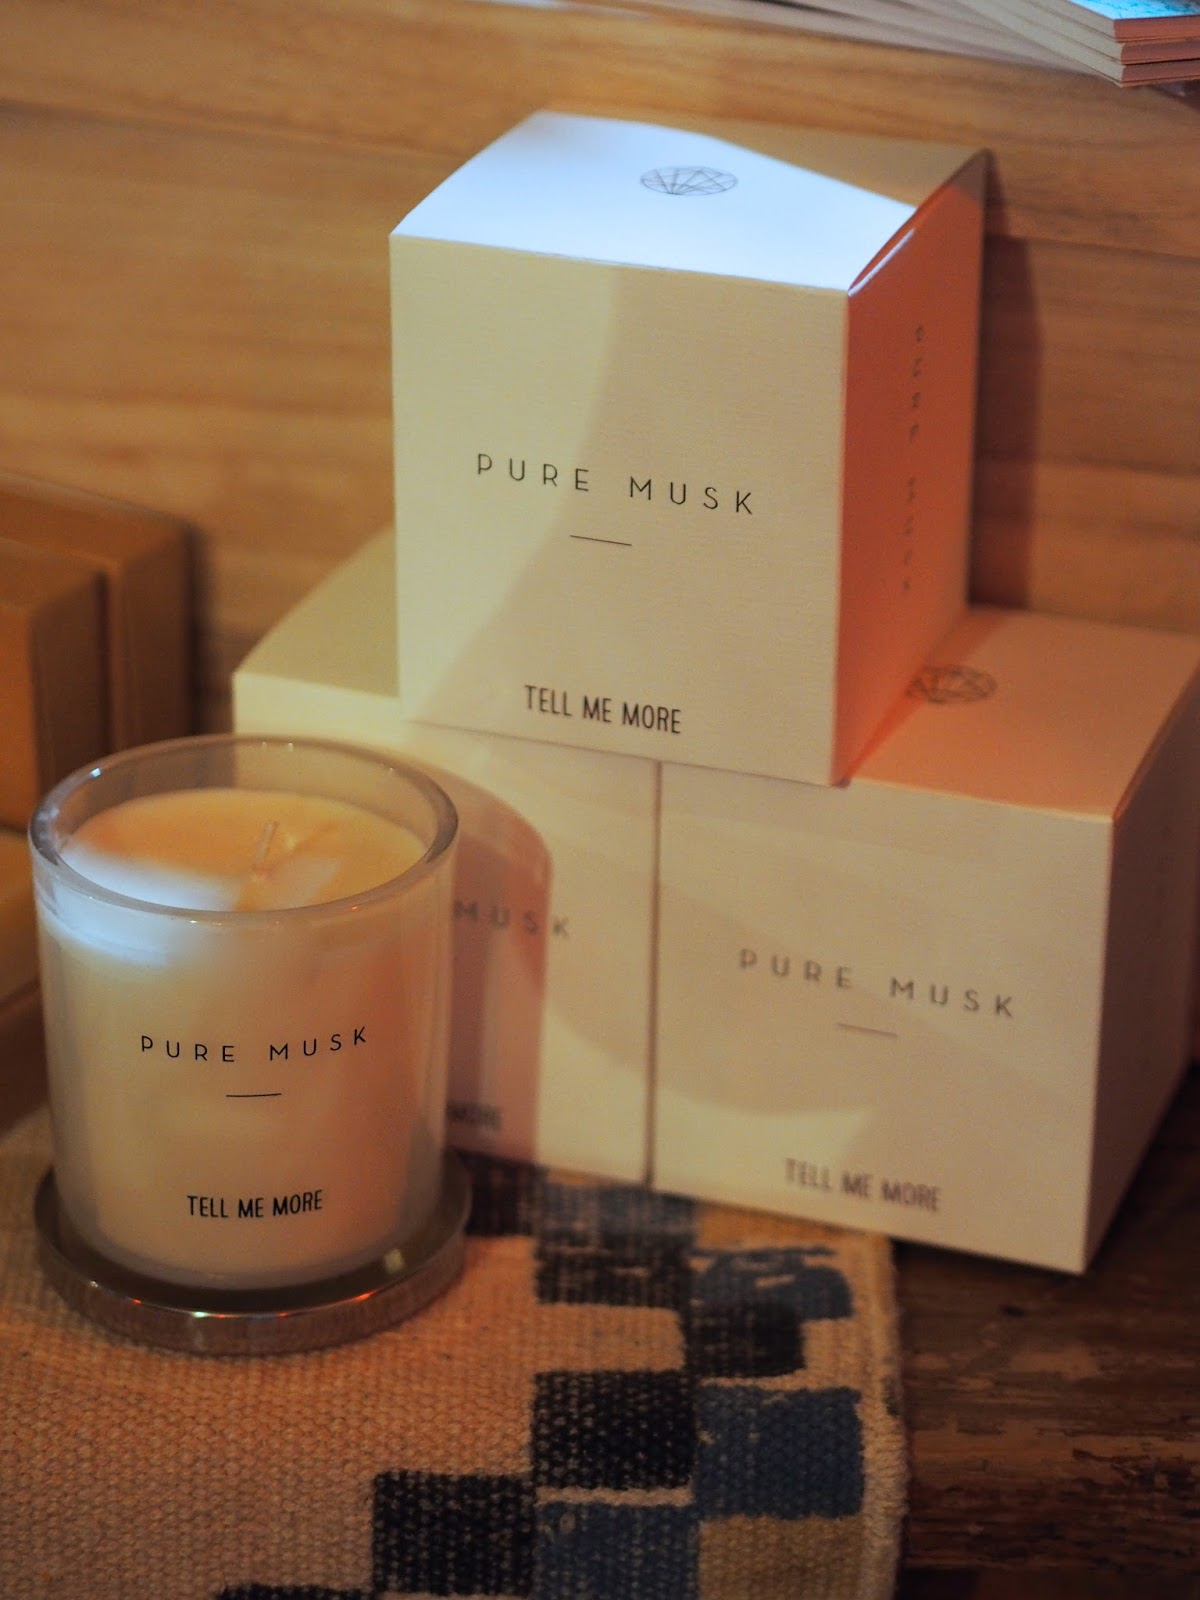 Musk Candle from Homage